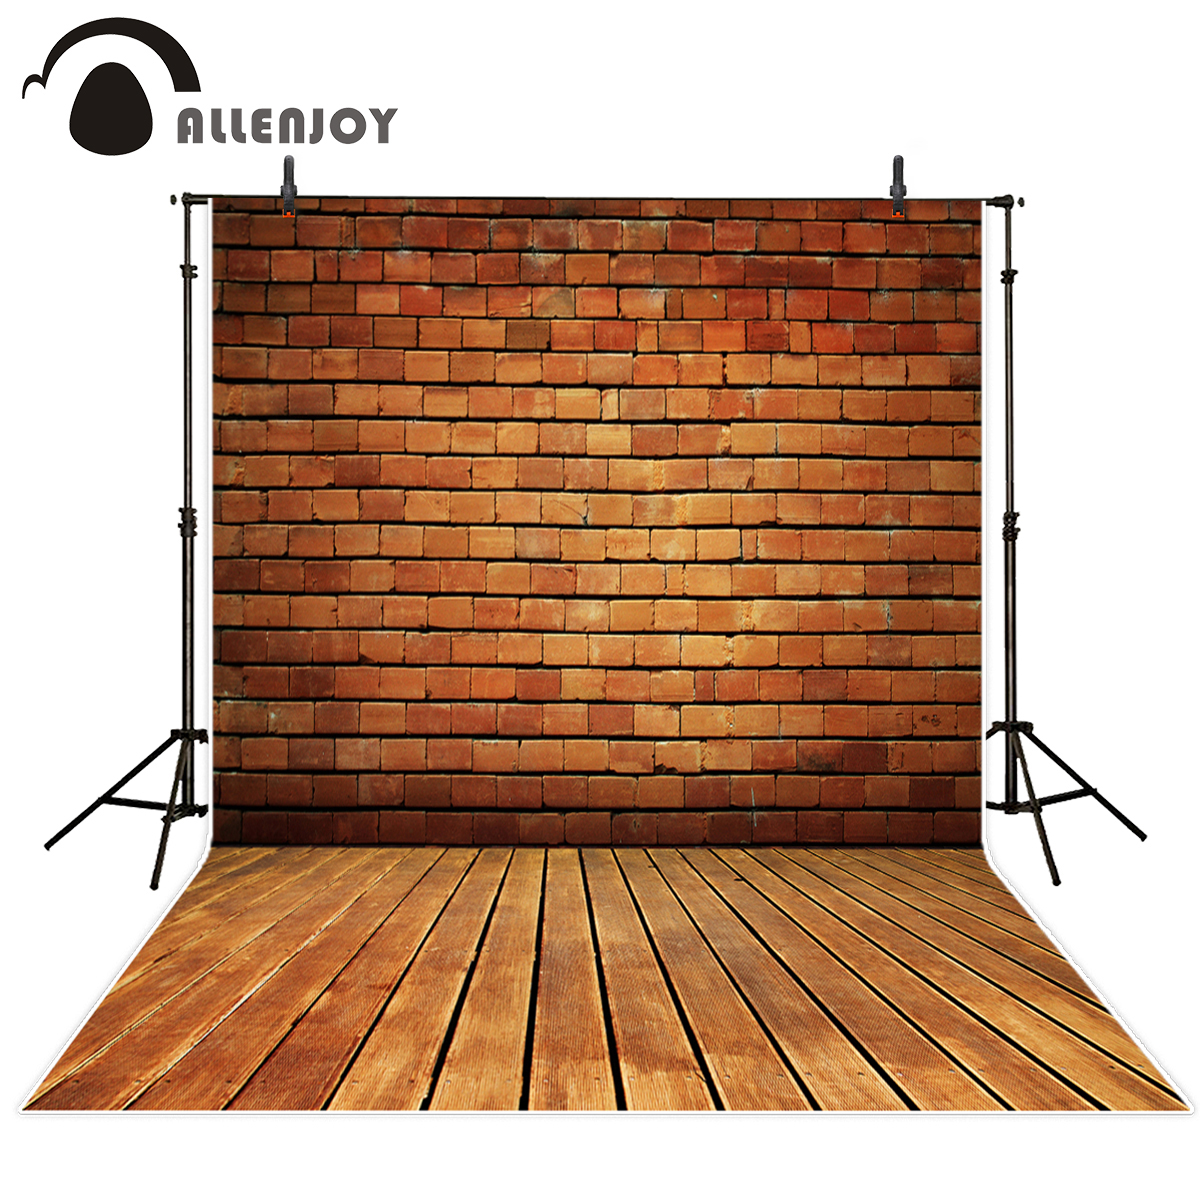 Allenjoy photography background vintage brick wall wood floor professional photo studio theme backdrop camera fotografica shengyongbao 300cm 200cm vinyl custom photography backdrops brick wall theme photo studio props photography background brw 12